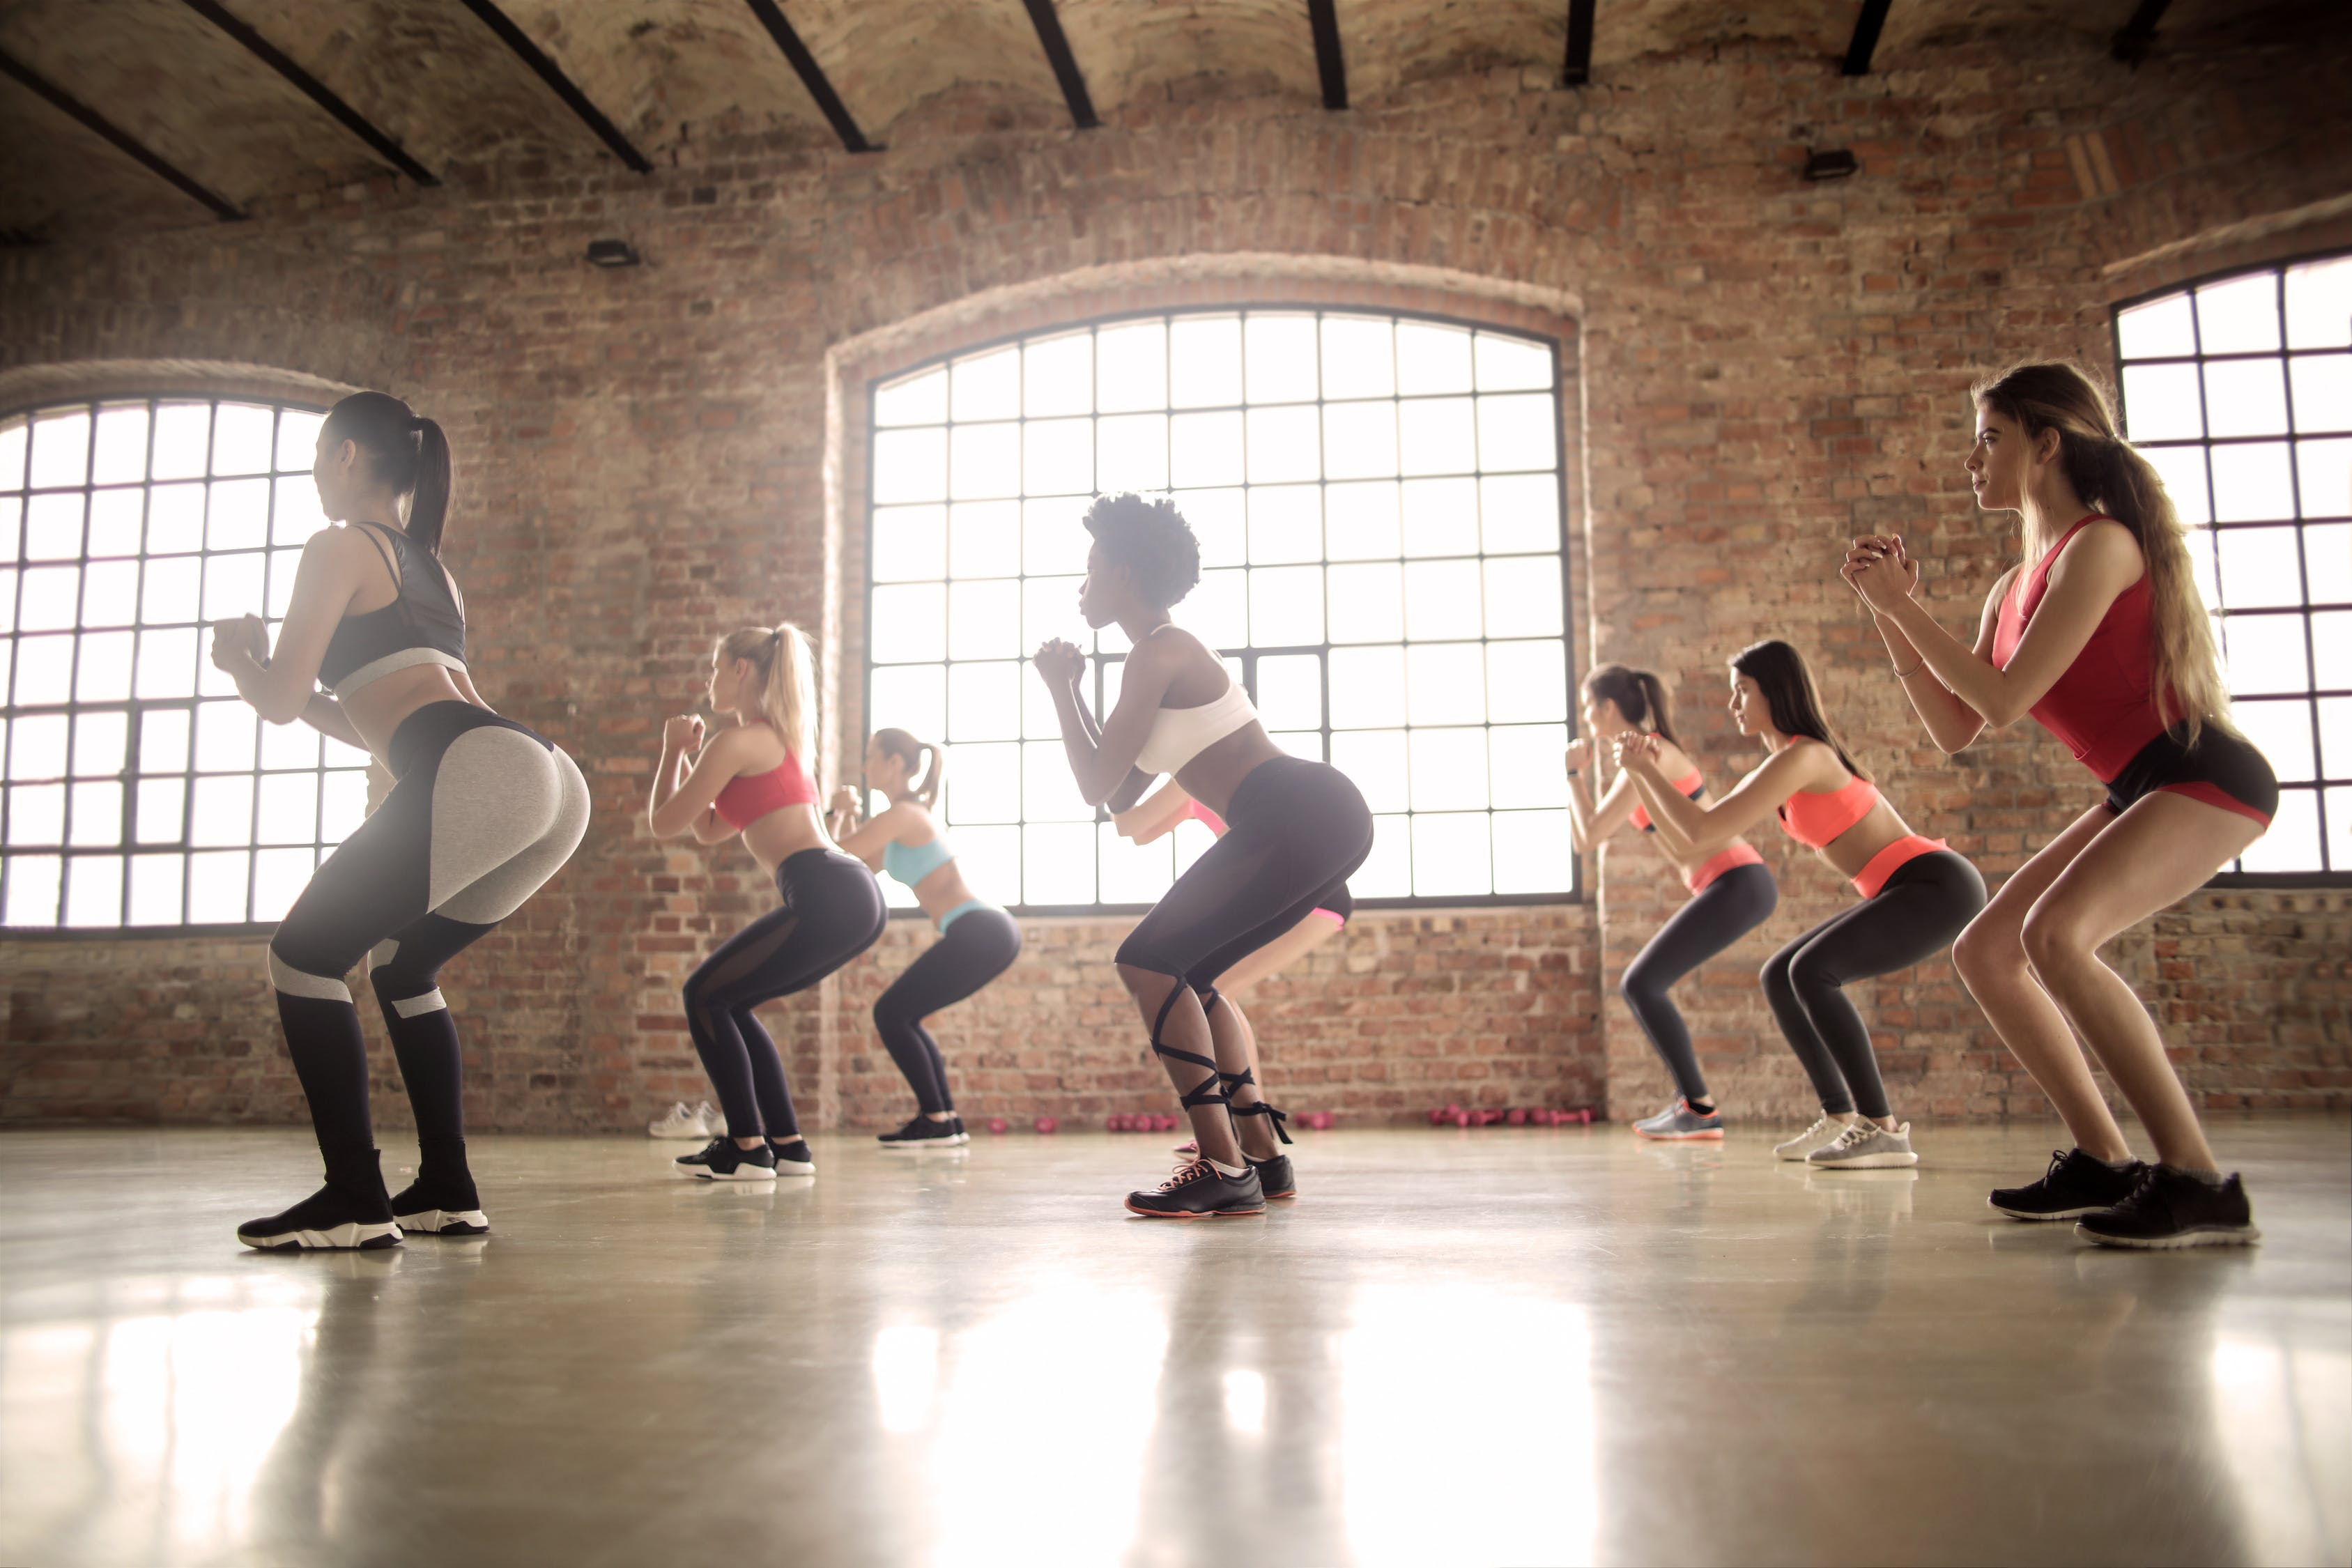 Women squat in unison during an exercise class.